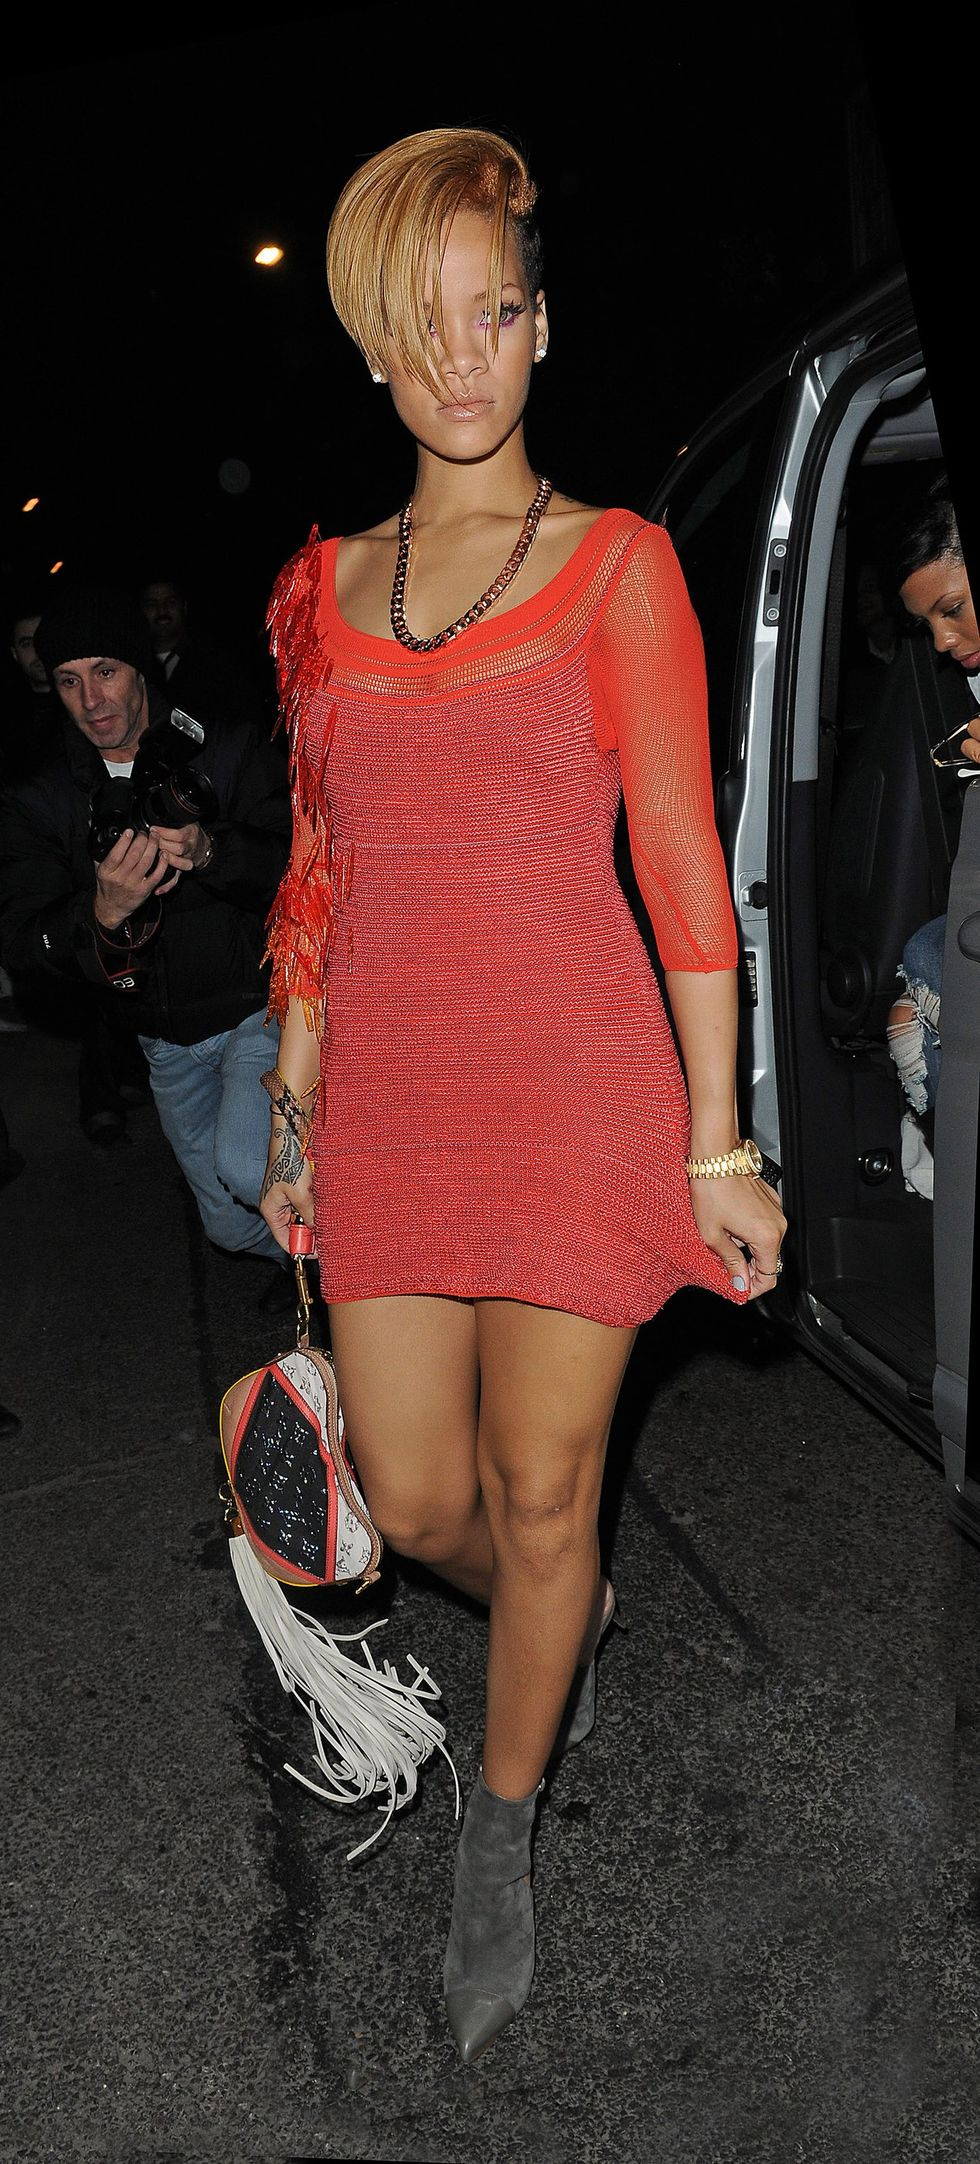 rihanna-leggy-canddis-at-mahiki-nightclub-in-london-01